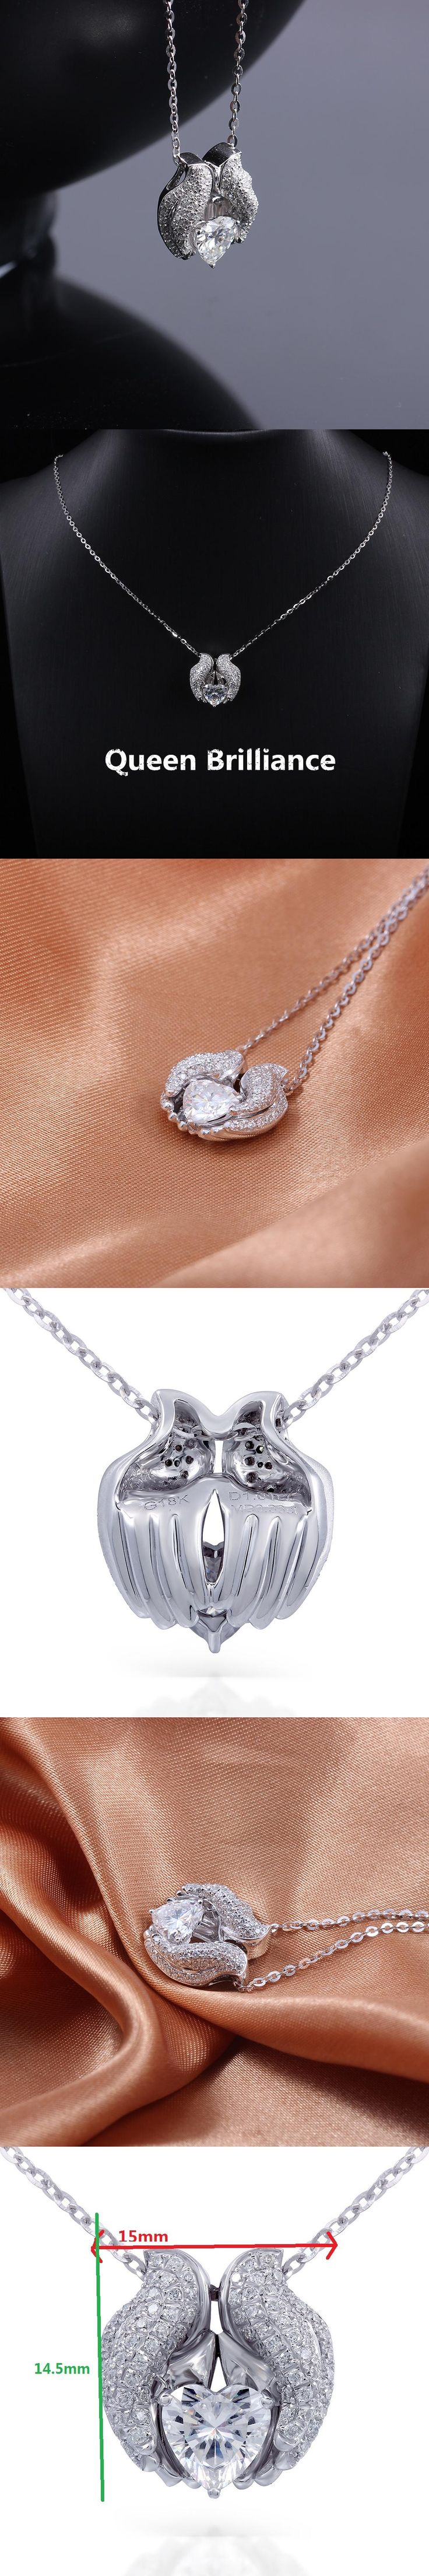 1ctw Heart Cut Lab Grown Moissanite Diamond Floating Pendant Necklace Genuine 18K 750 White Gold Fine Jewerly Choker For Women